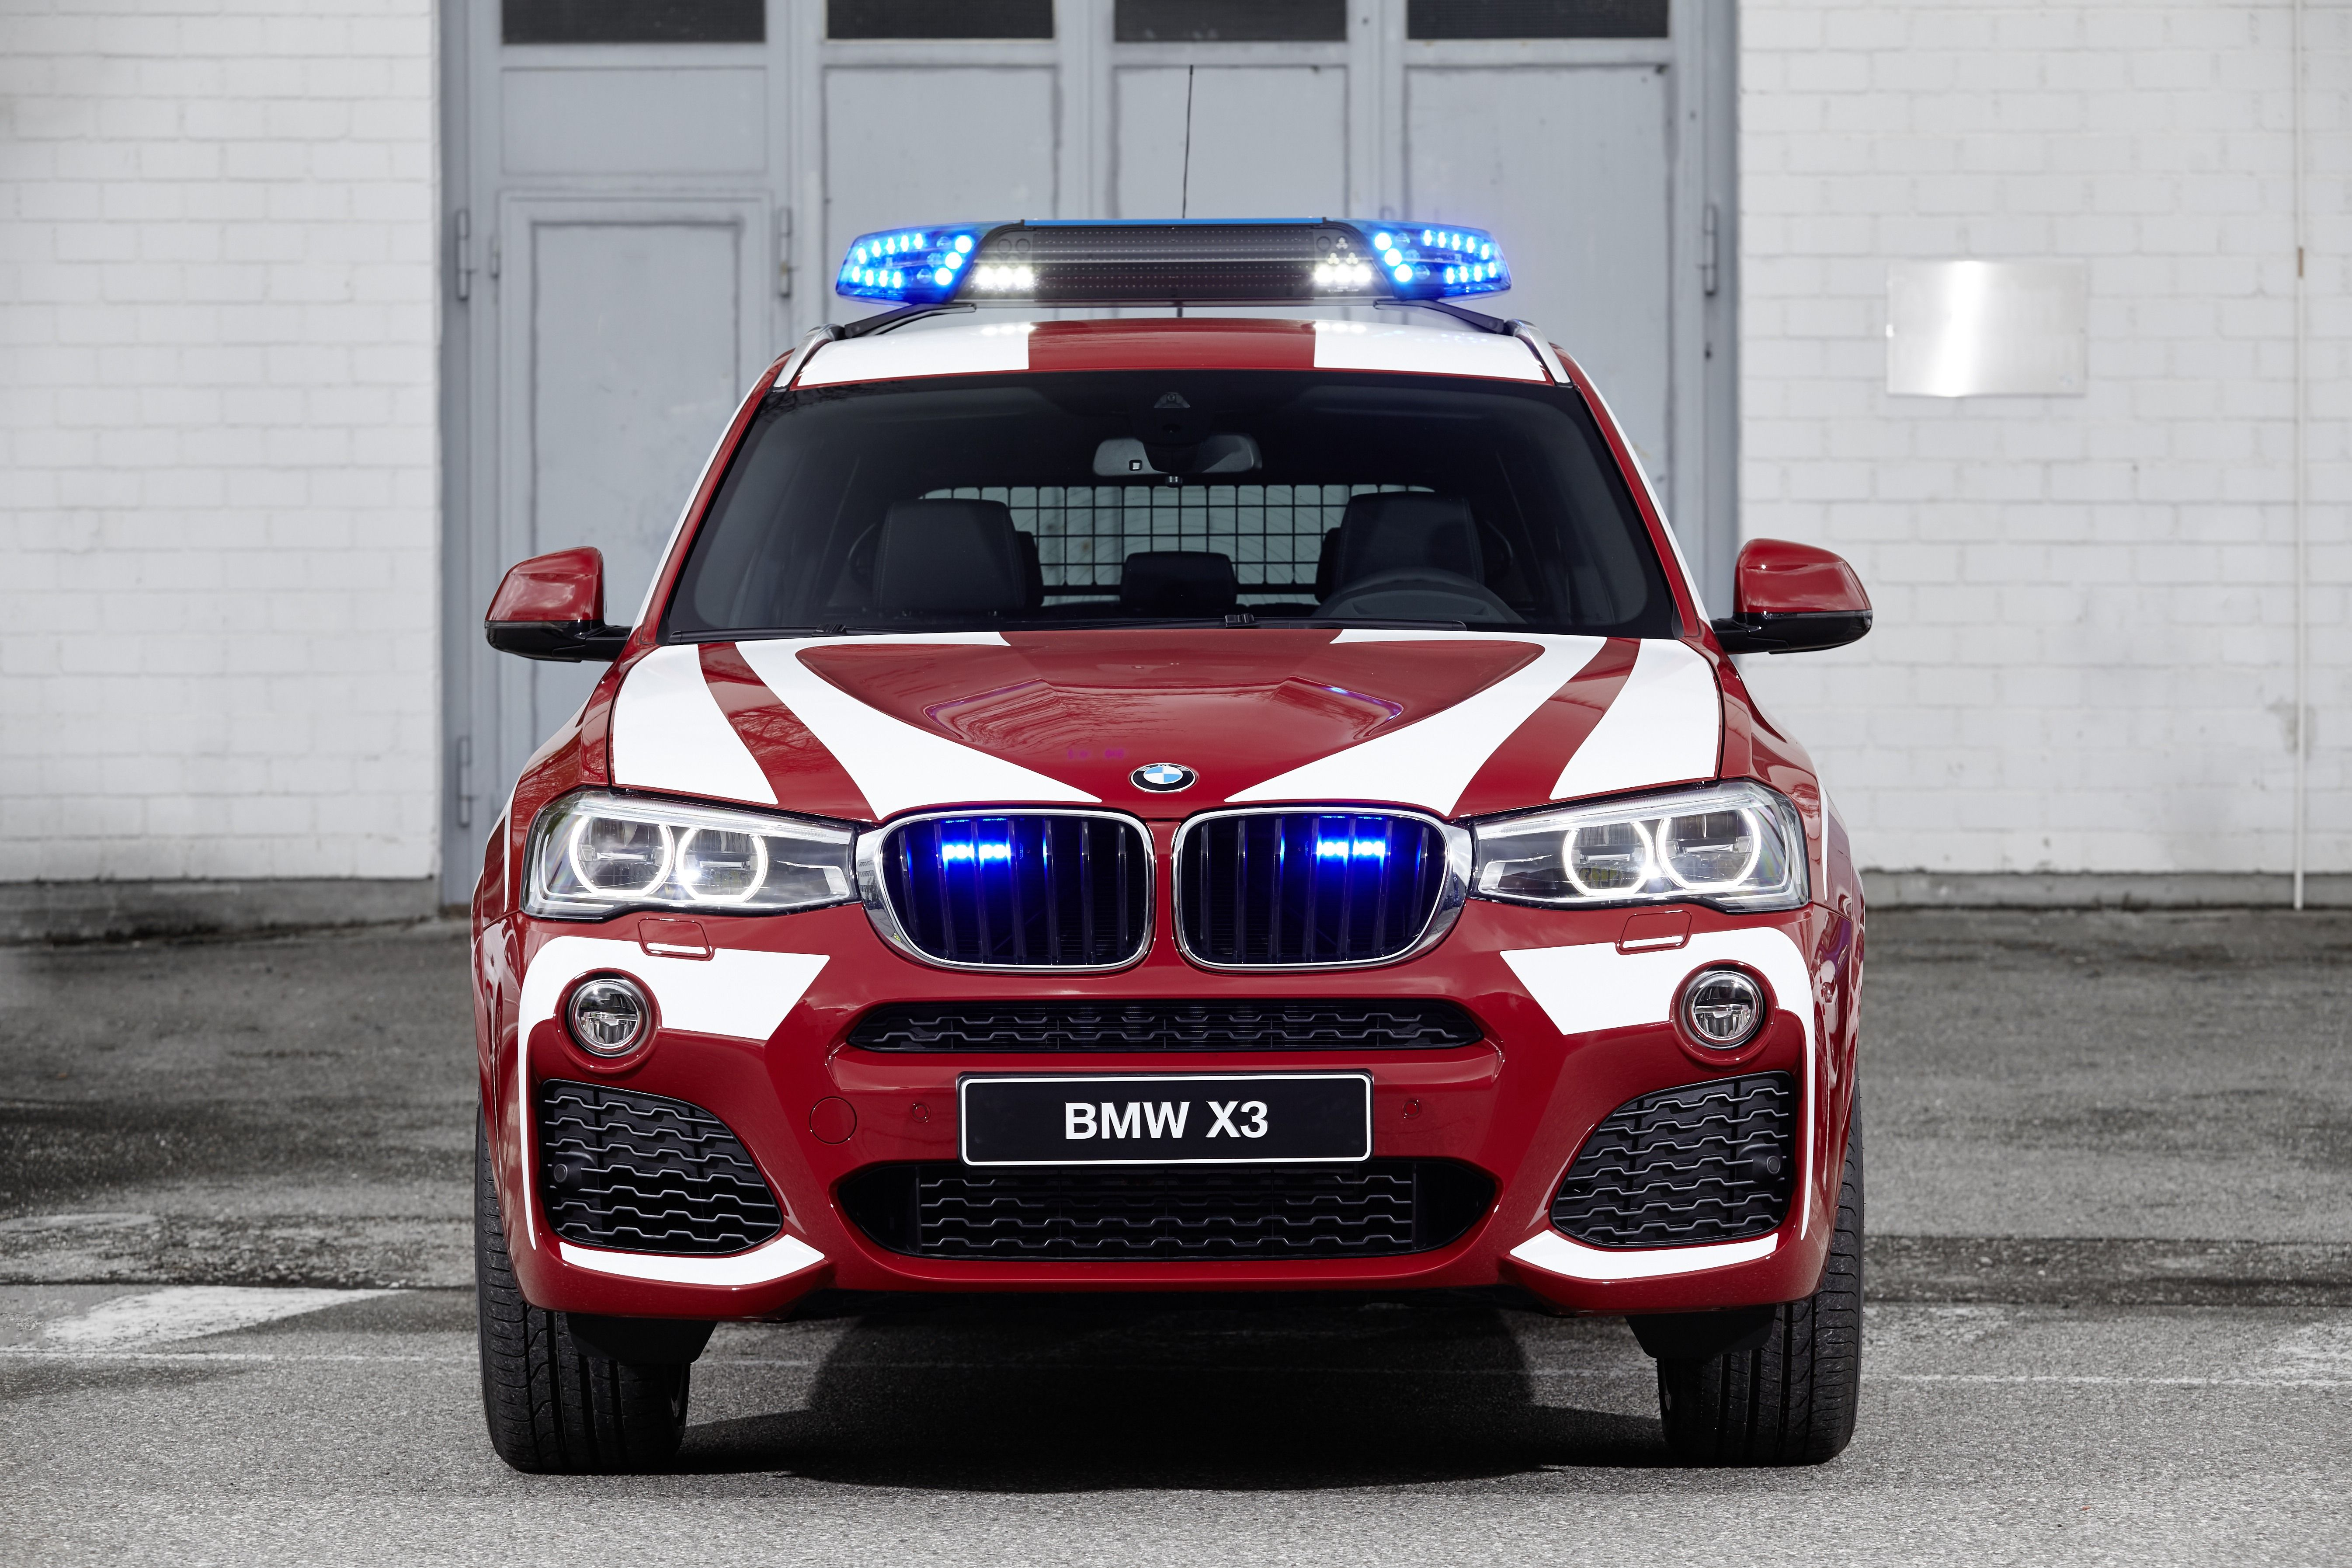 bmw x3 xdrive20d as fire service command vehicle